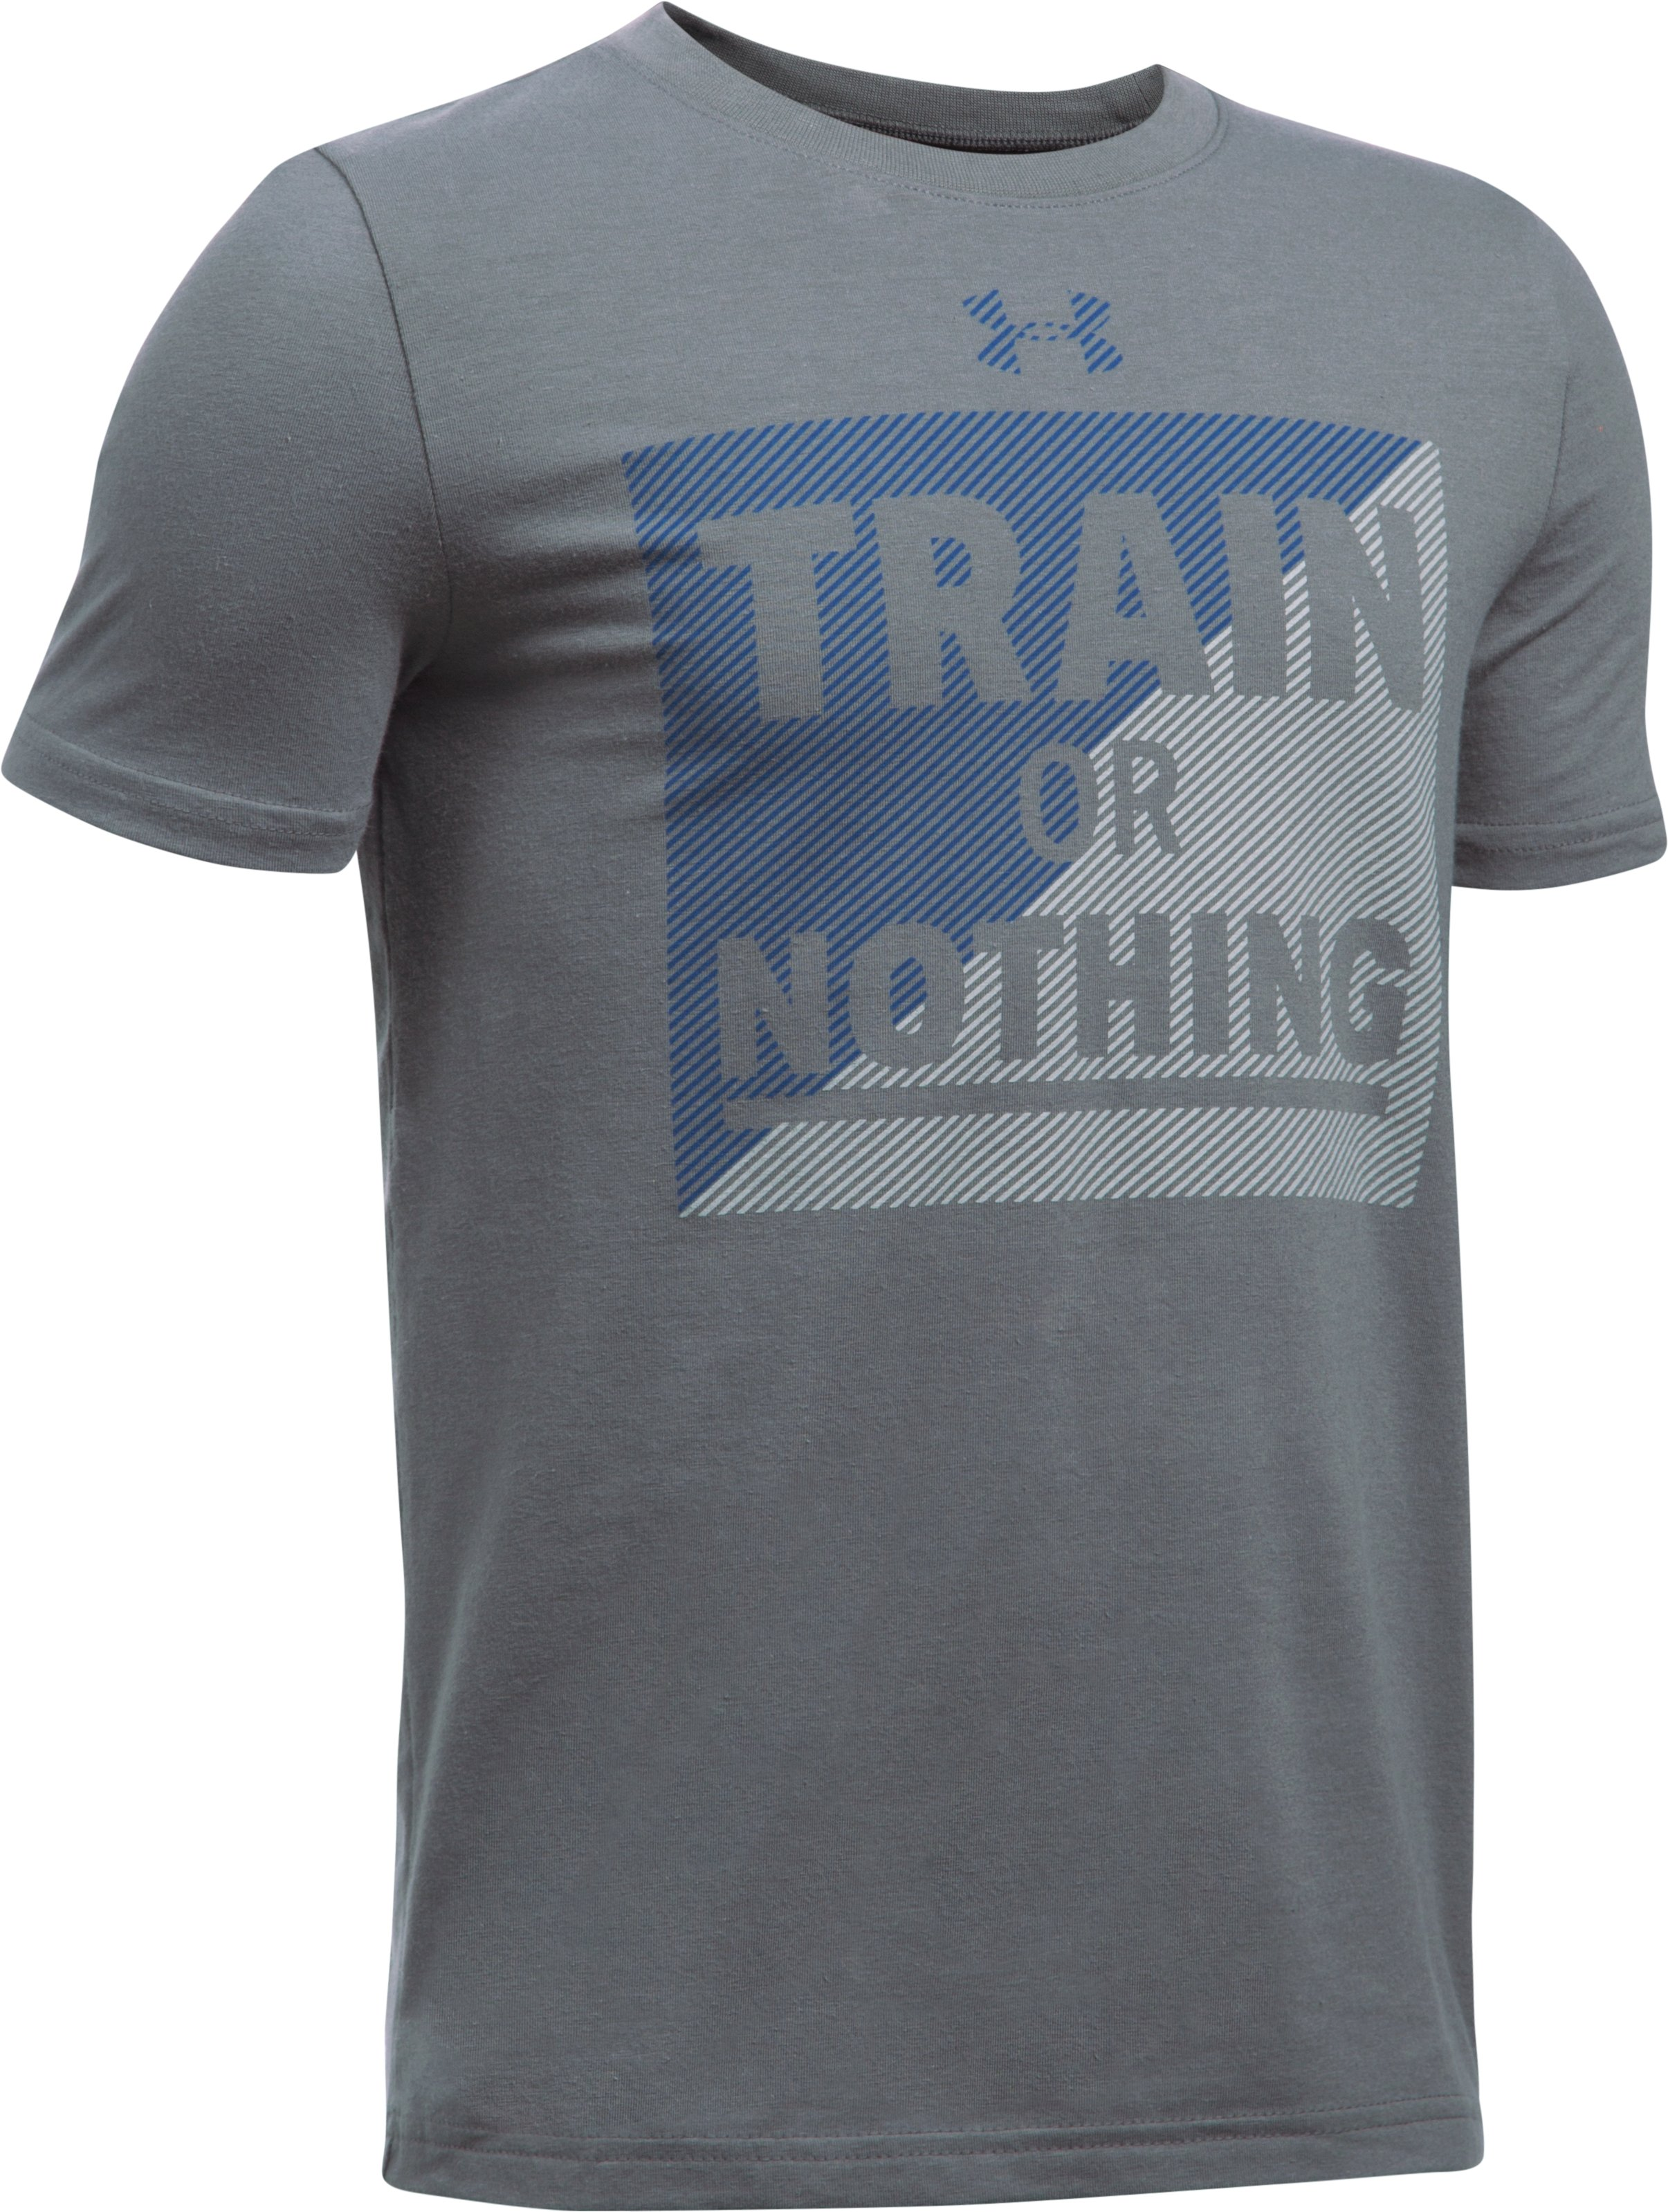 Boys' UA Train Or Nothing T-Shirt, Graphite